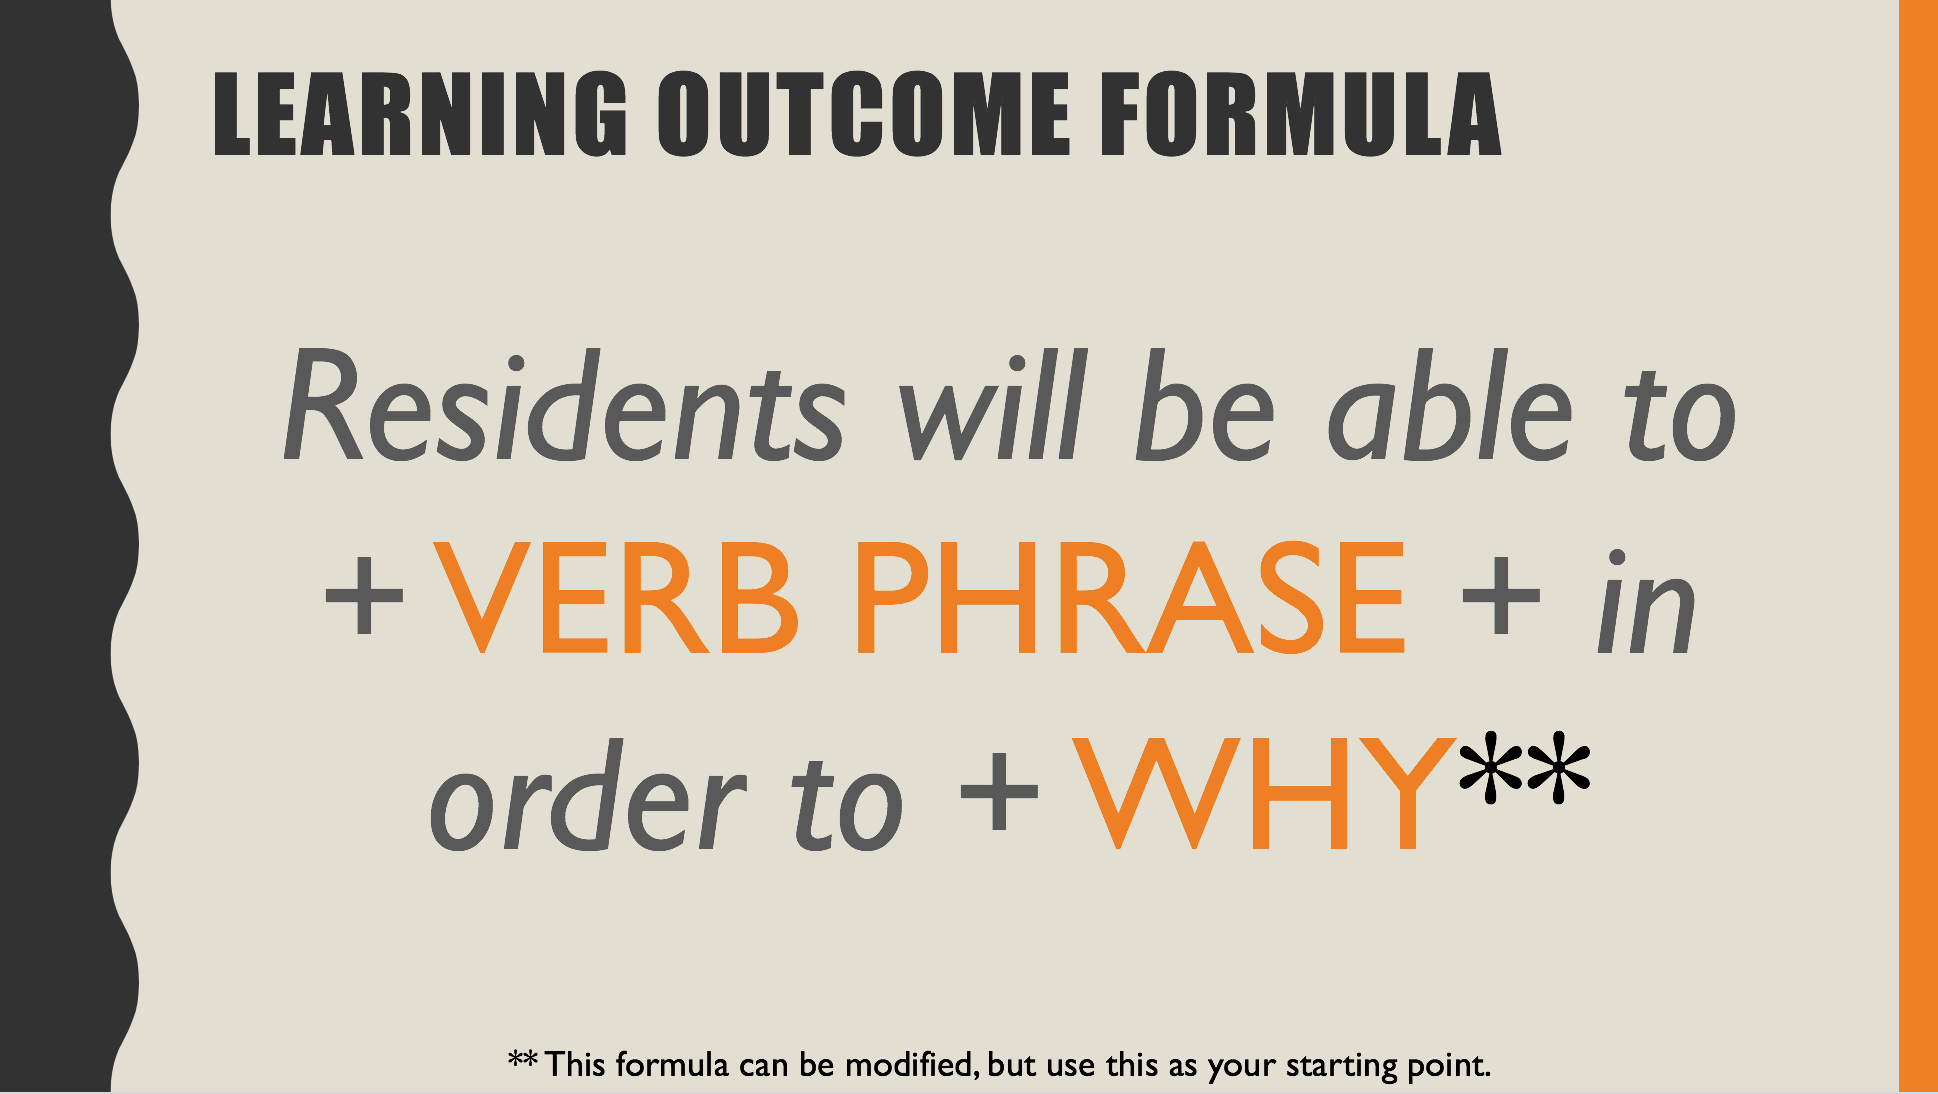 The framework for writing learning outcomes.